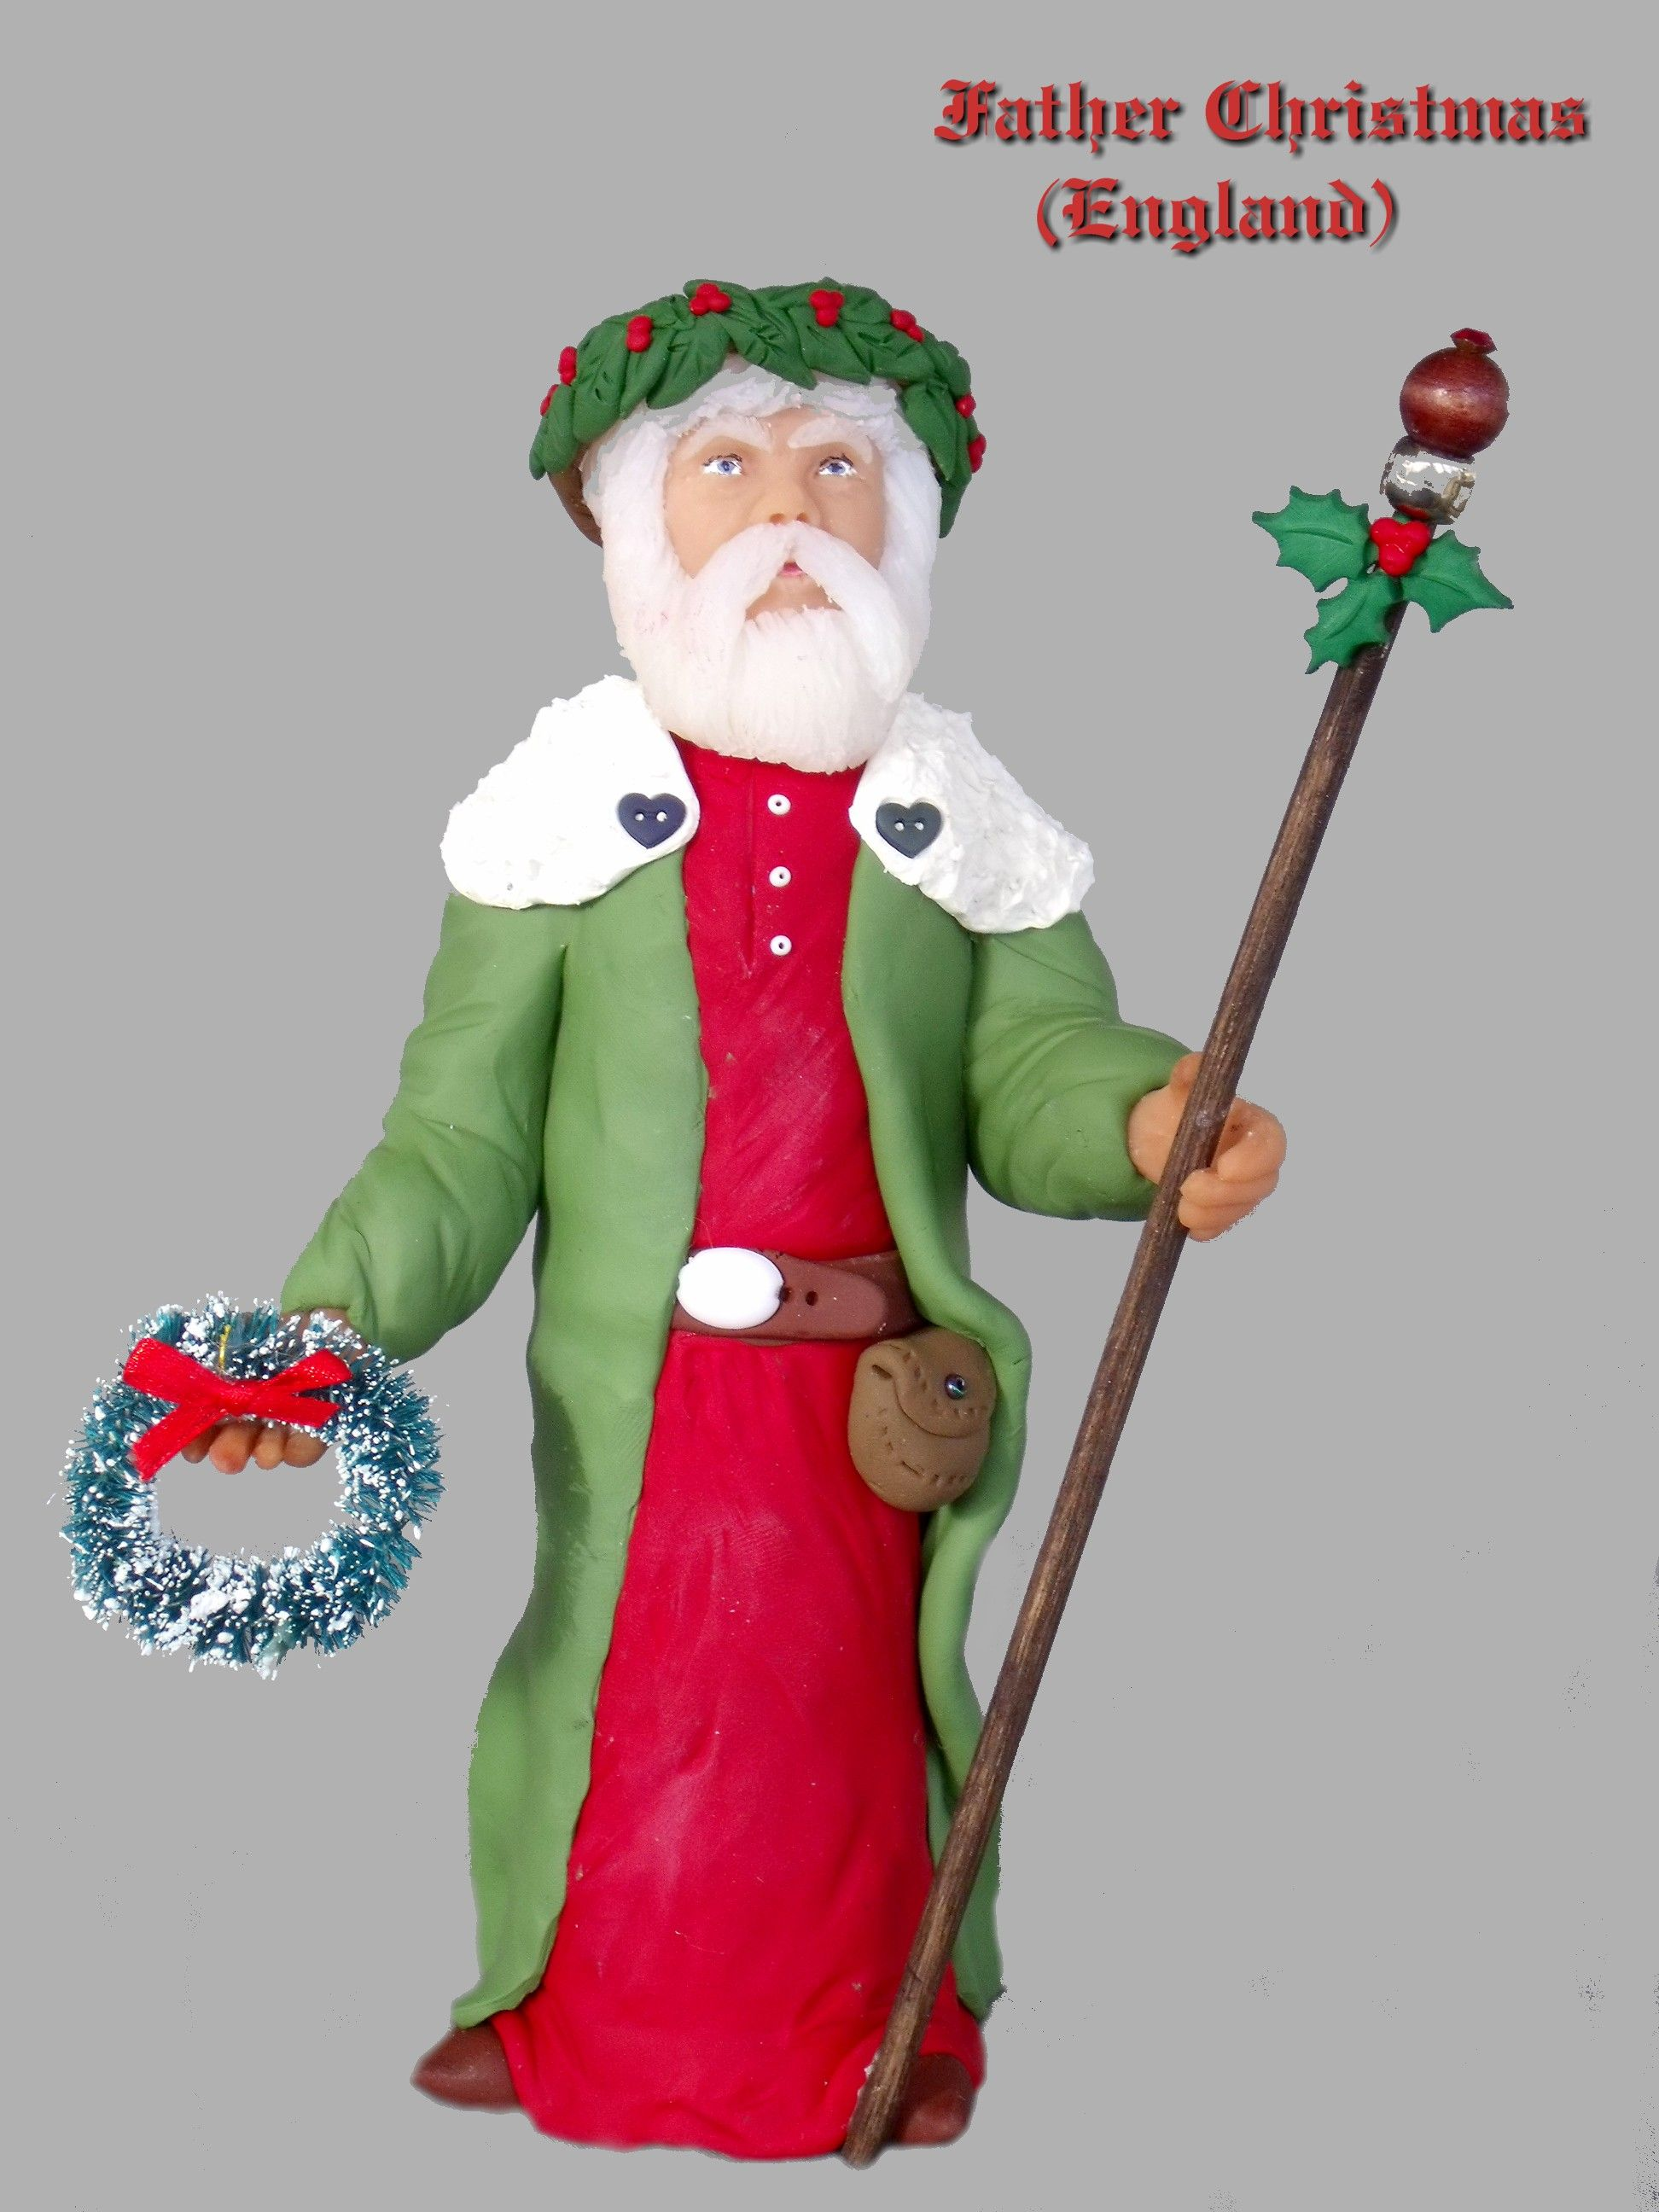 Father Christmas England Sold At City Village Bethlehem PA 11 30 2013